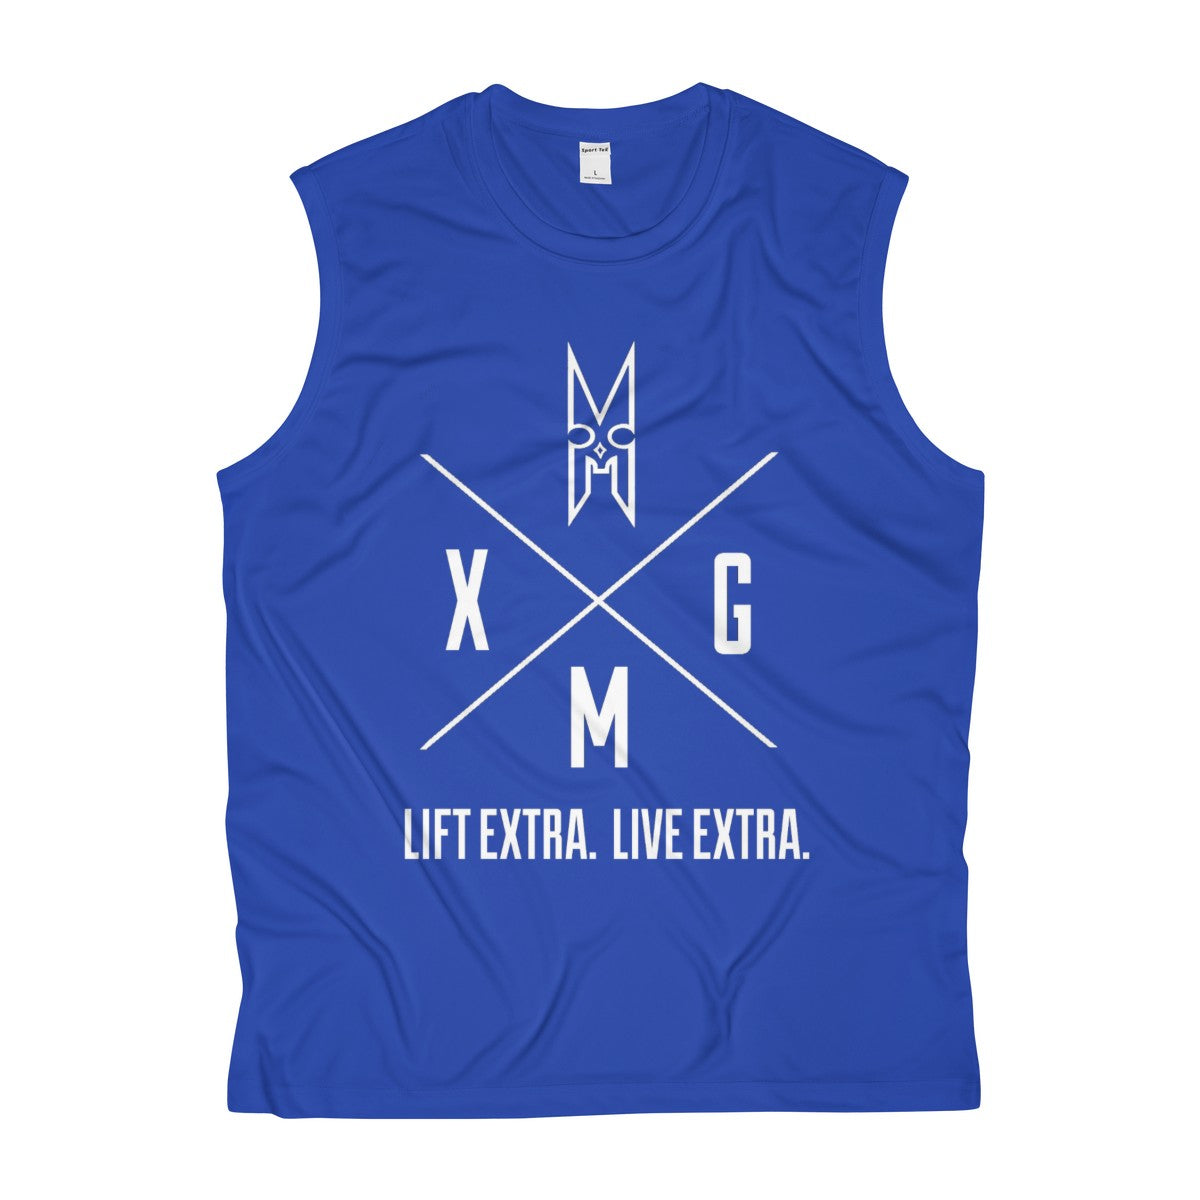 XMG Men's Sleeveless Performance Tee